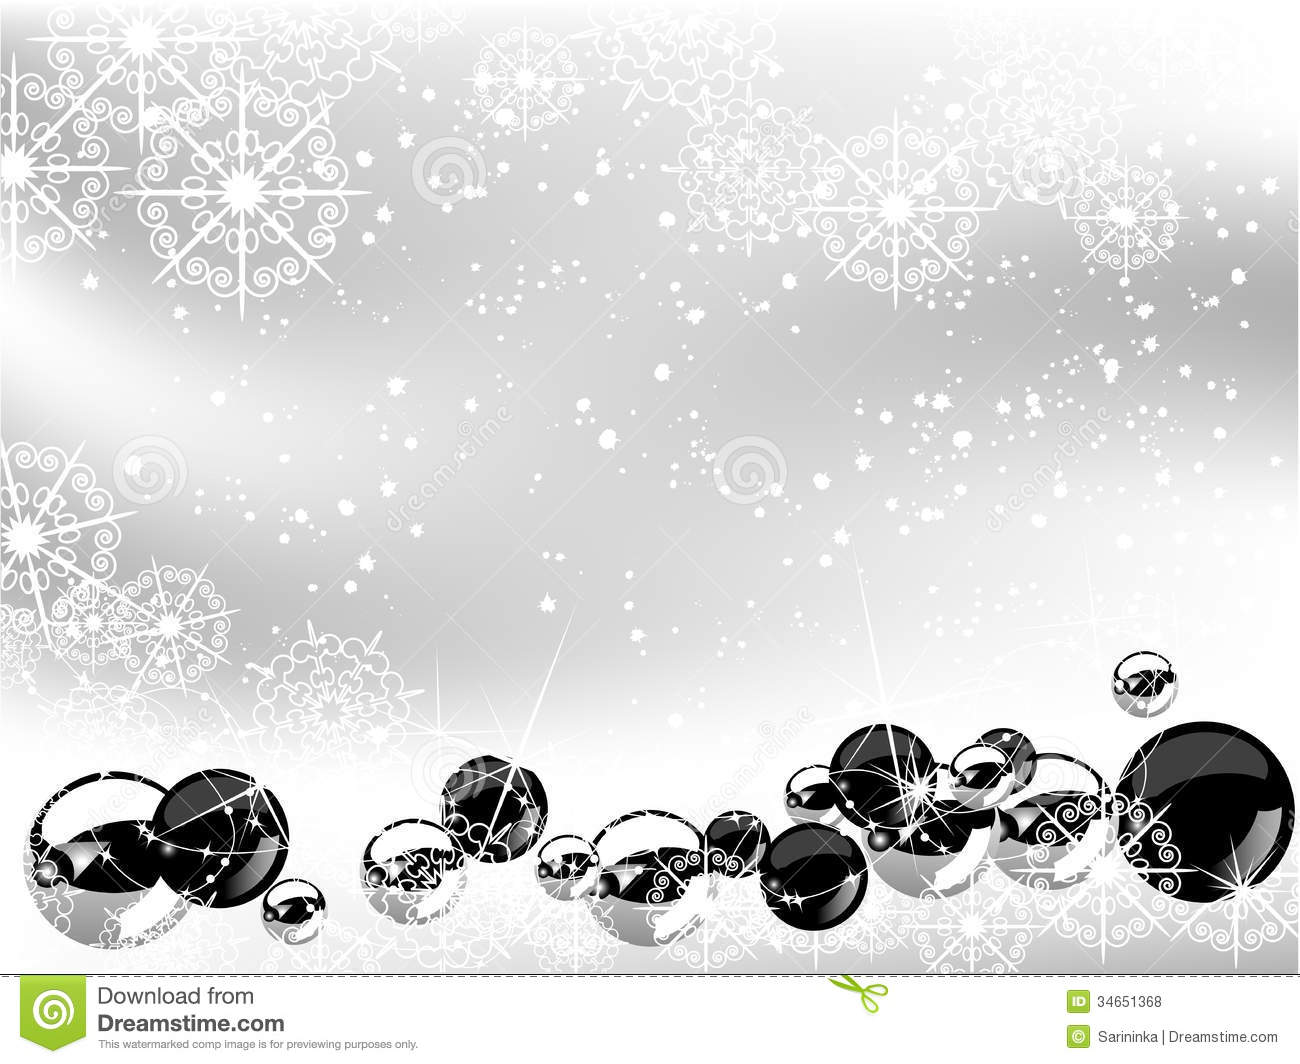 Black and silver online images 18 wide wallpaper - Black and silver christmas ...